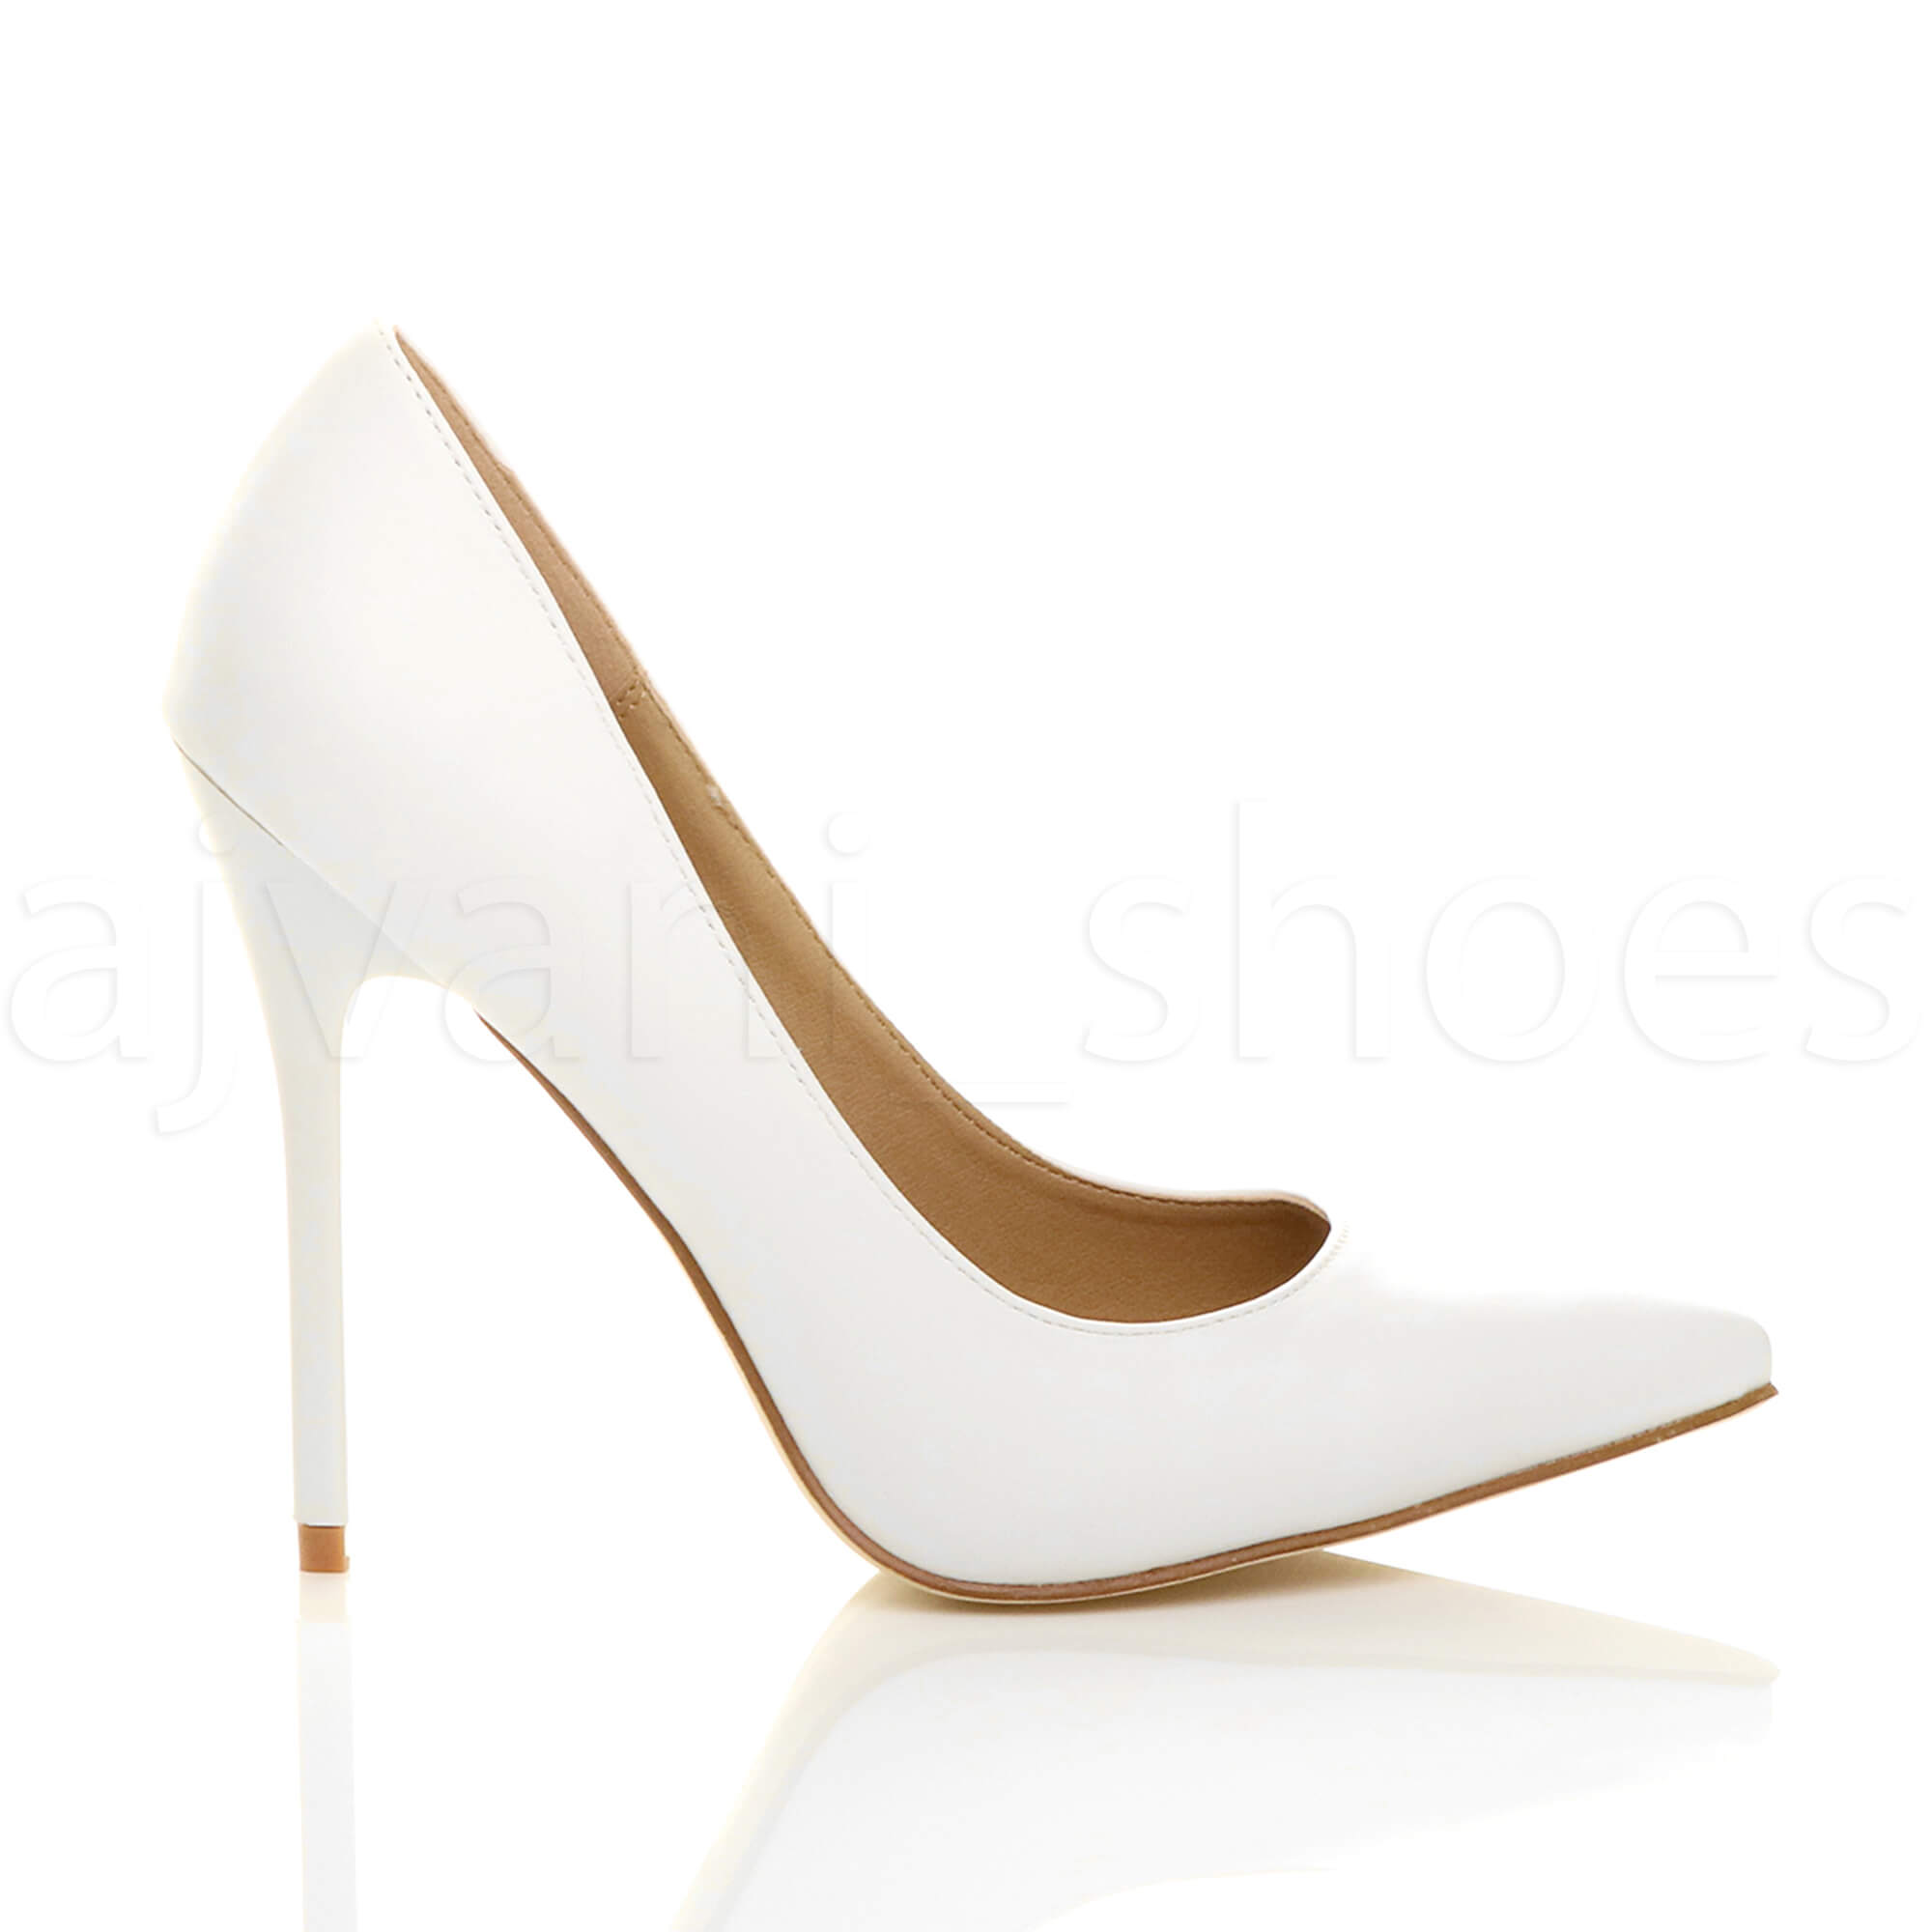 WOMENS-LADIES-HIGH-HEEL-POINTED-CONTRAST-COURT-SMART-PARTY-WORK-SHOES-PUMPS-SIZE thumbnail 216